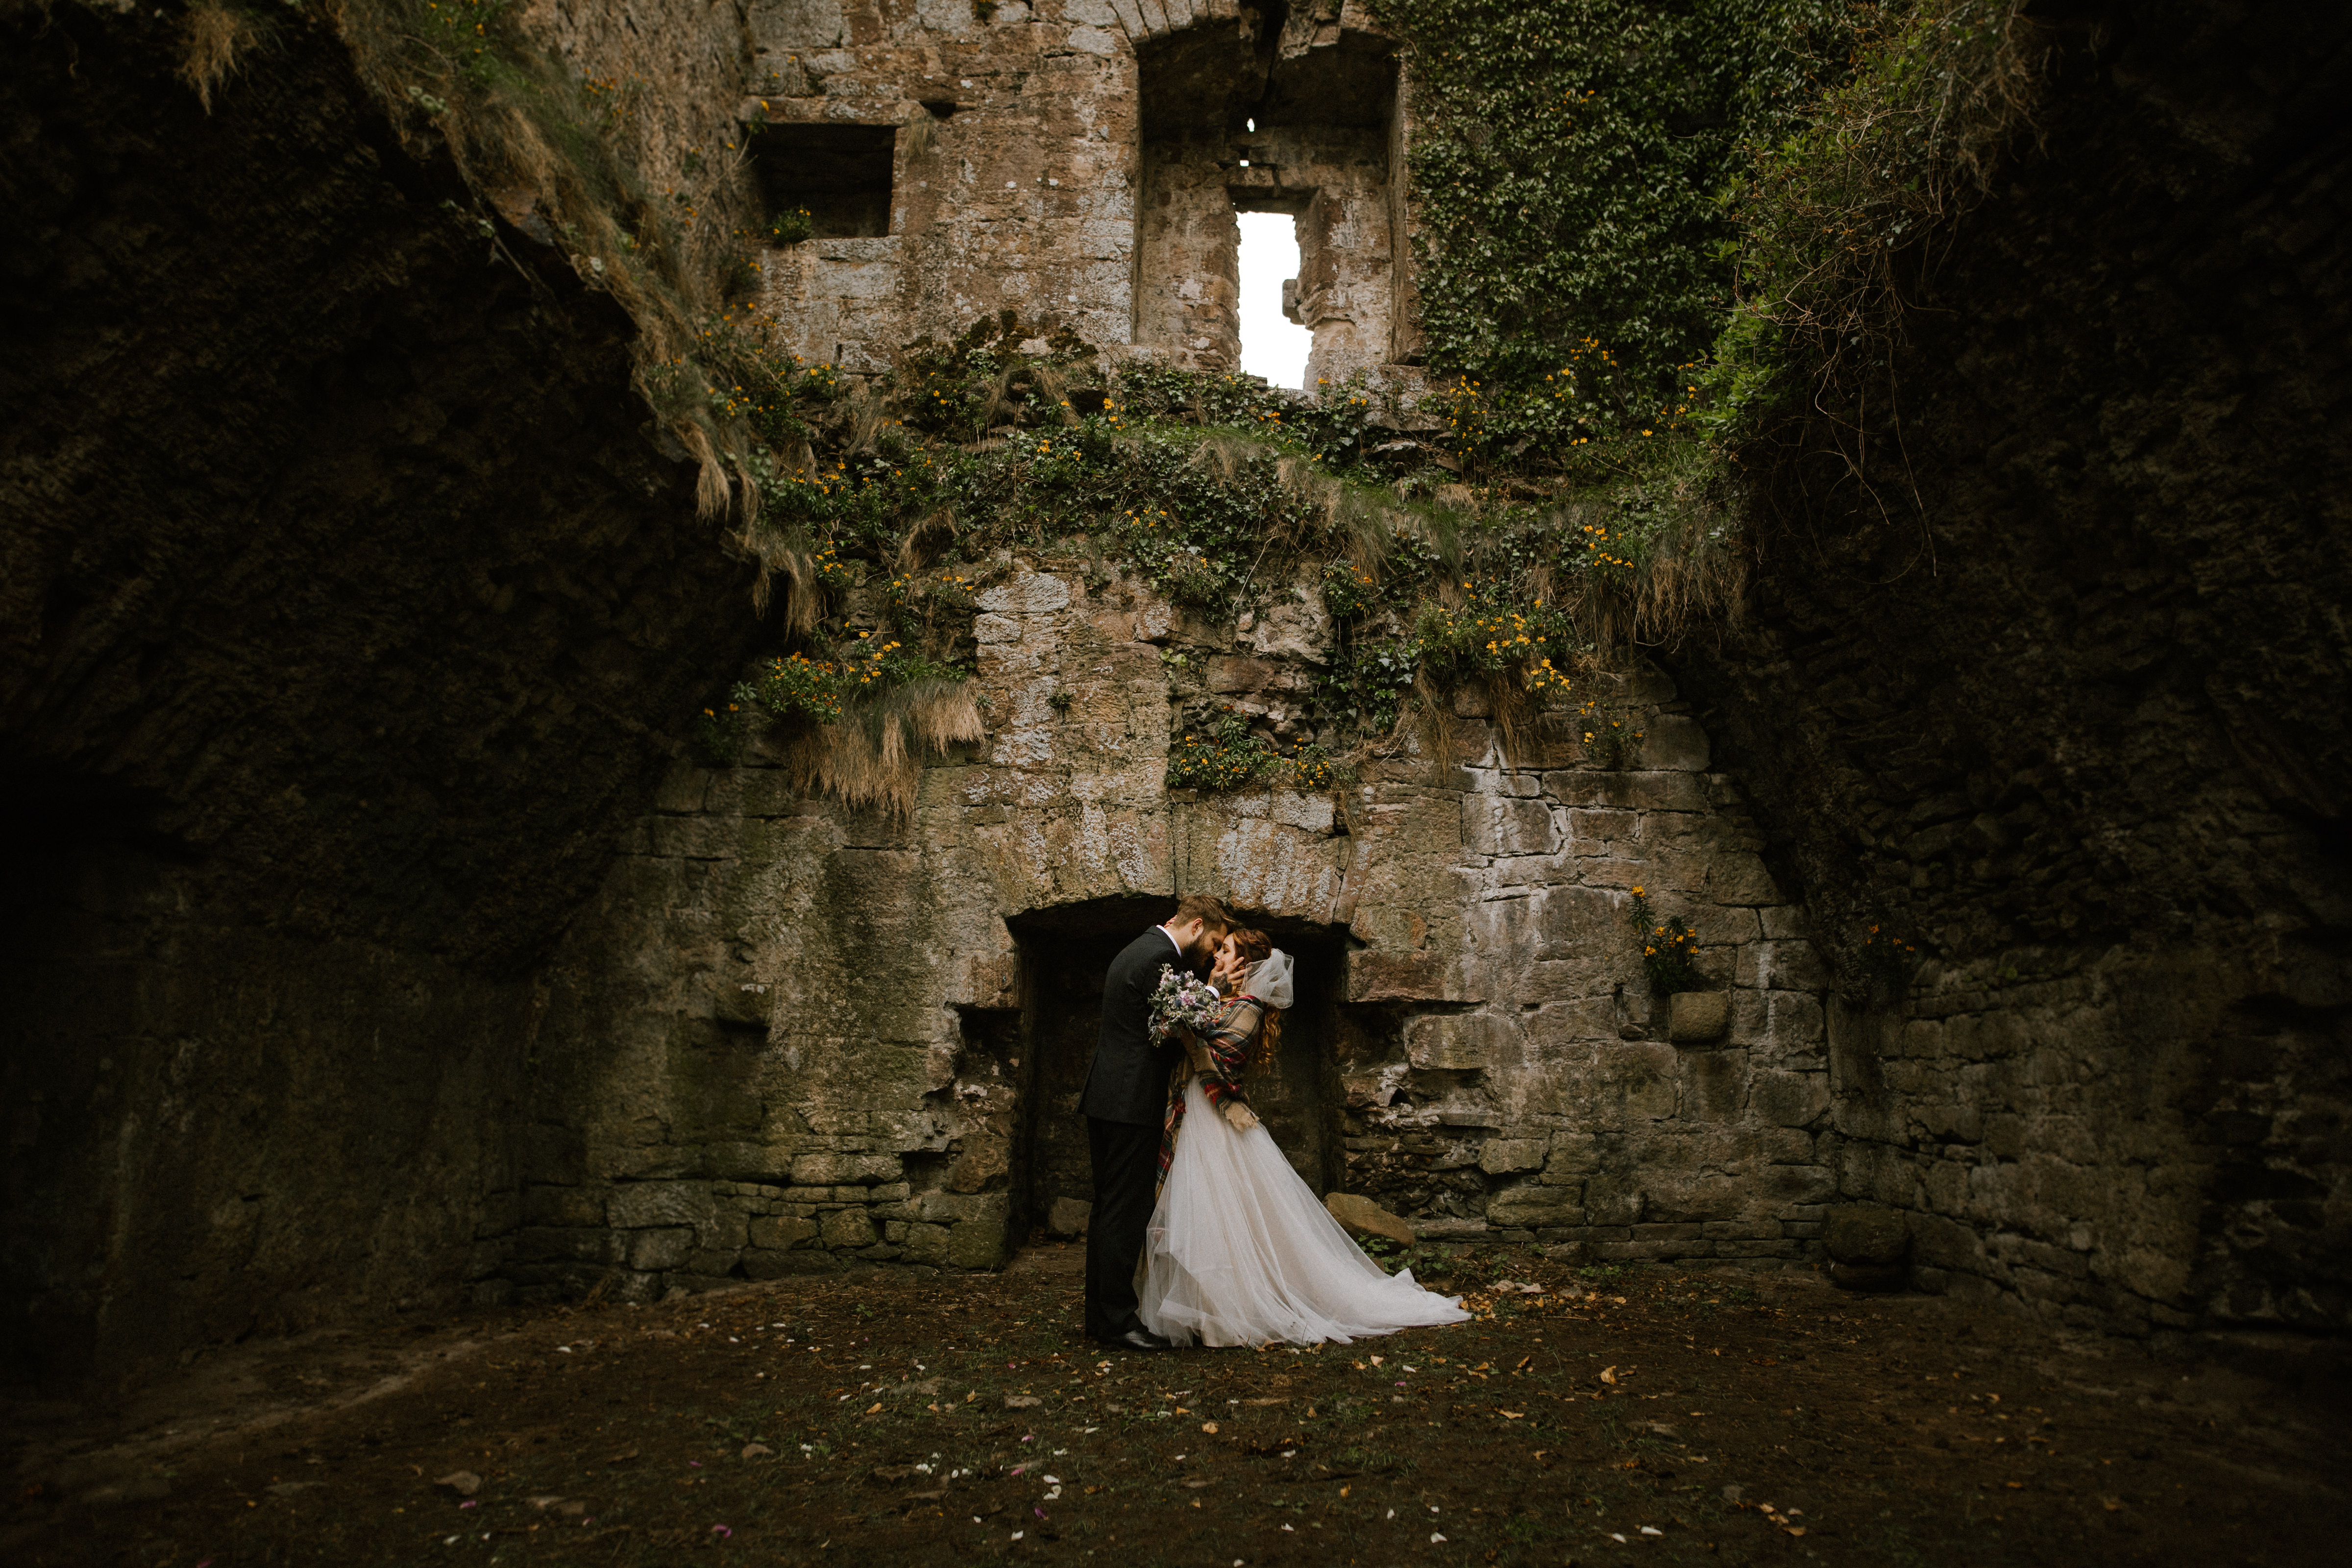 Private castle elopement in Dingle, Ireland - photo by White Cat Studios